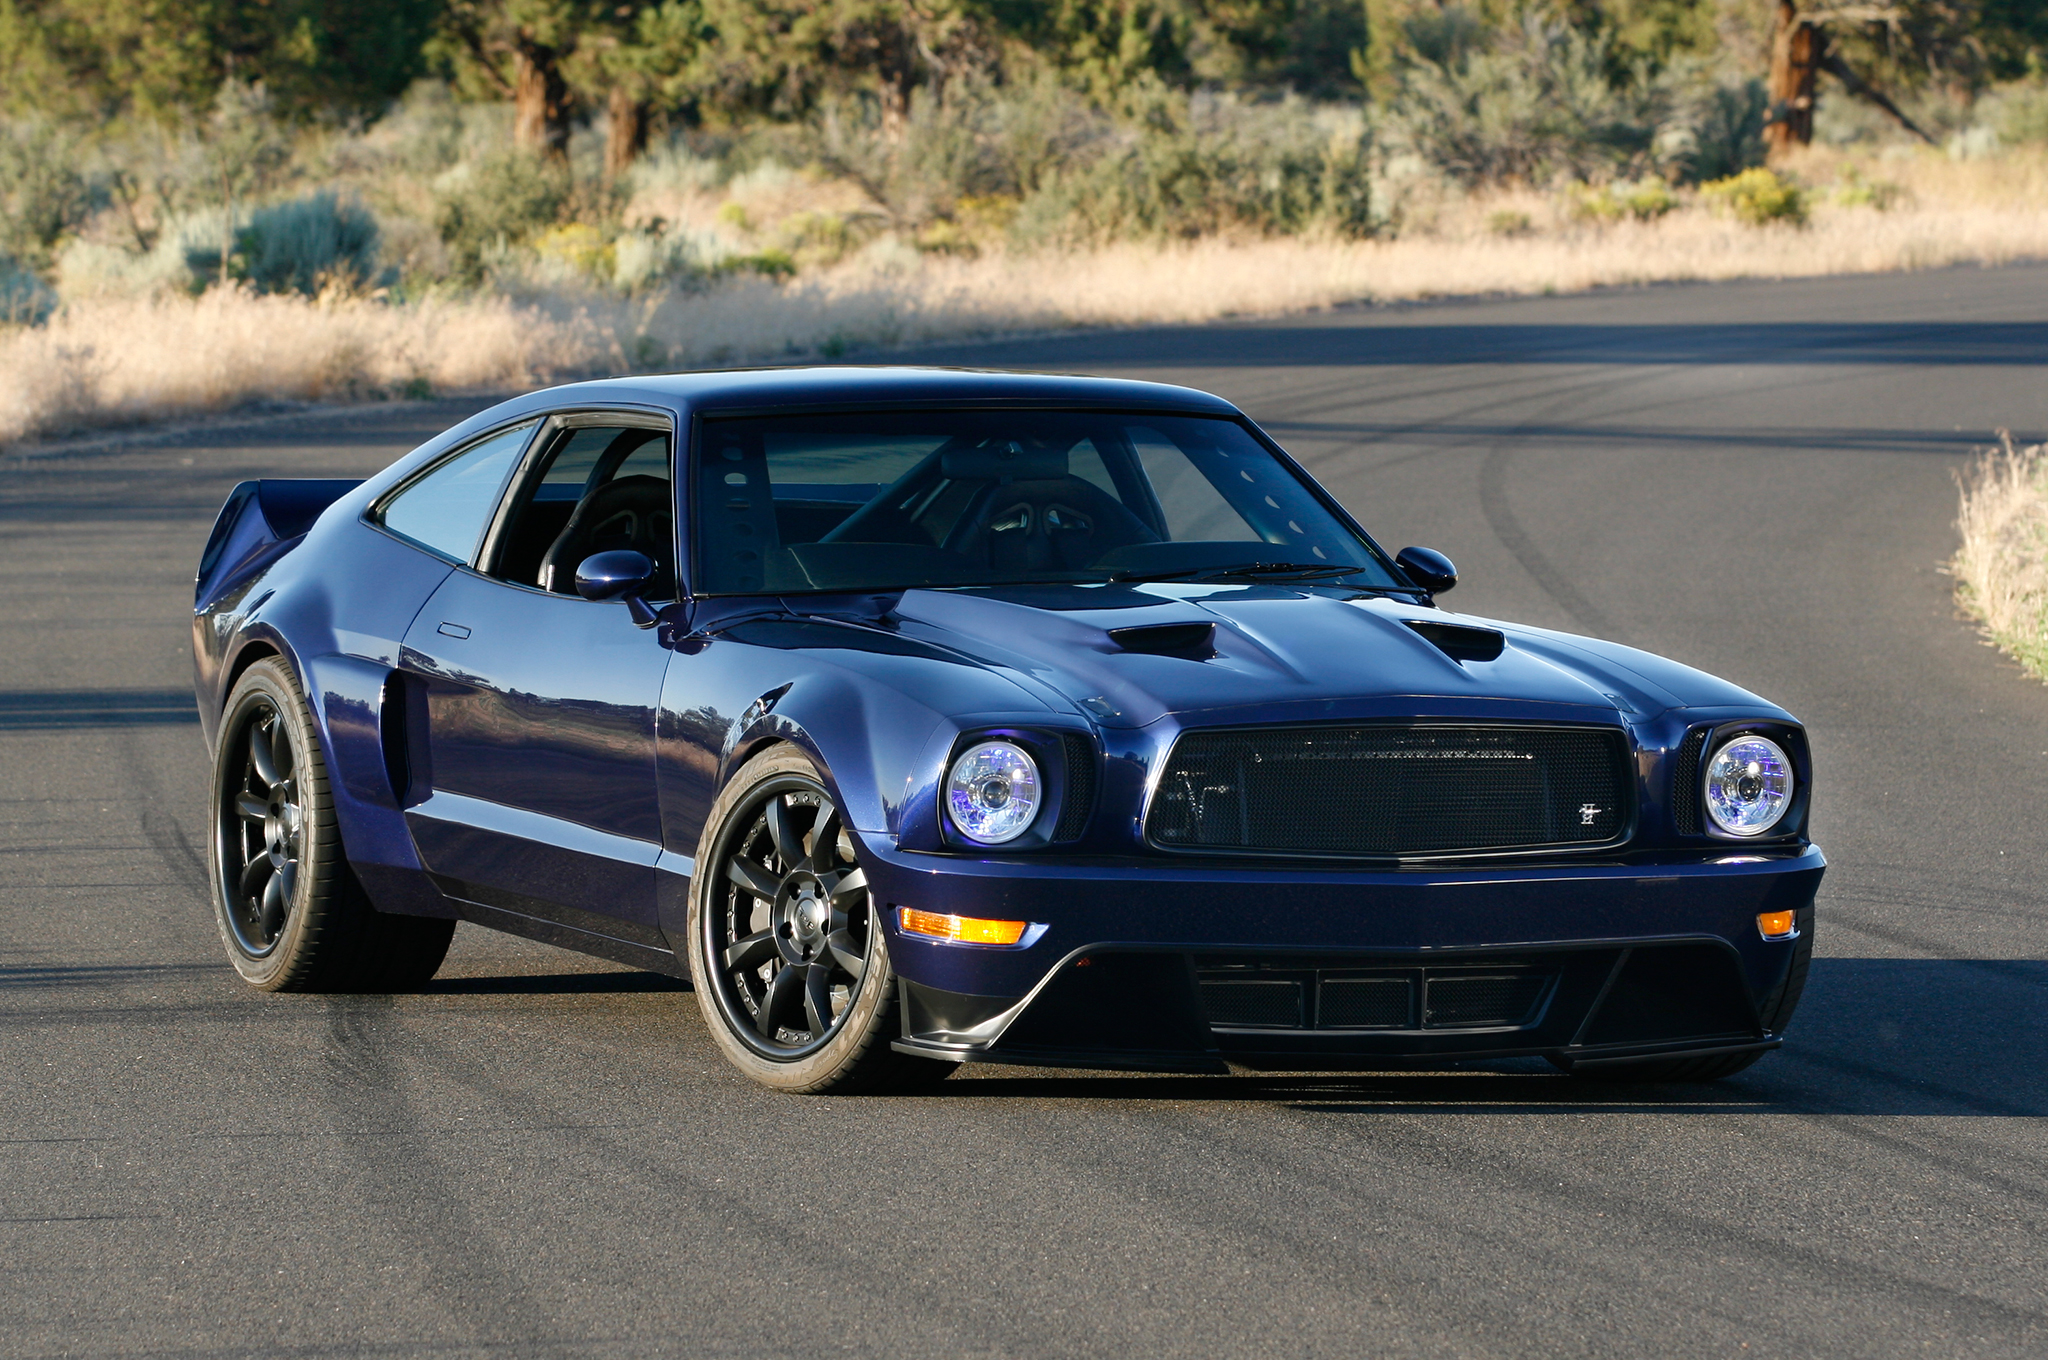 The Mustang Evolution draws design elements from a number of different eras. A good example is the hoodscoop assembly, which sharp eyes will identify as being 1971 Mustang sourced. Gordon Aram deftly cut off the metal skin of the 1971 hood, reshaped it, and grafted it to a Mustang II hood frame – of course that's a slight oversimplification of the complicated job!